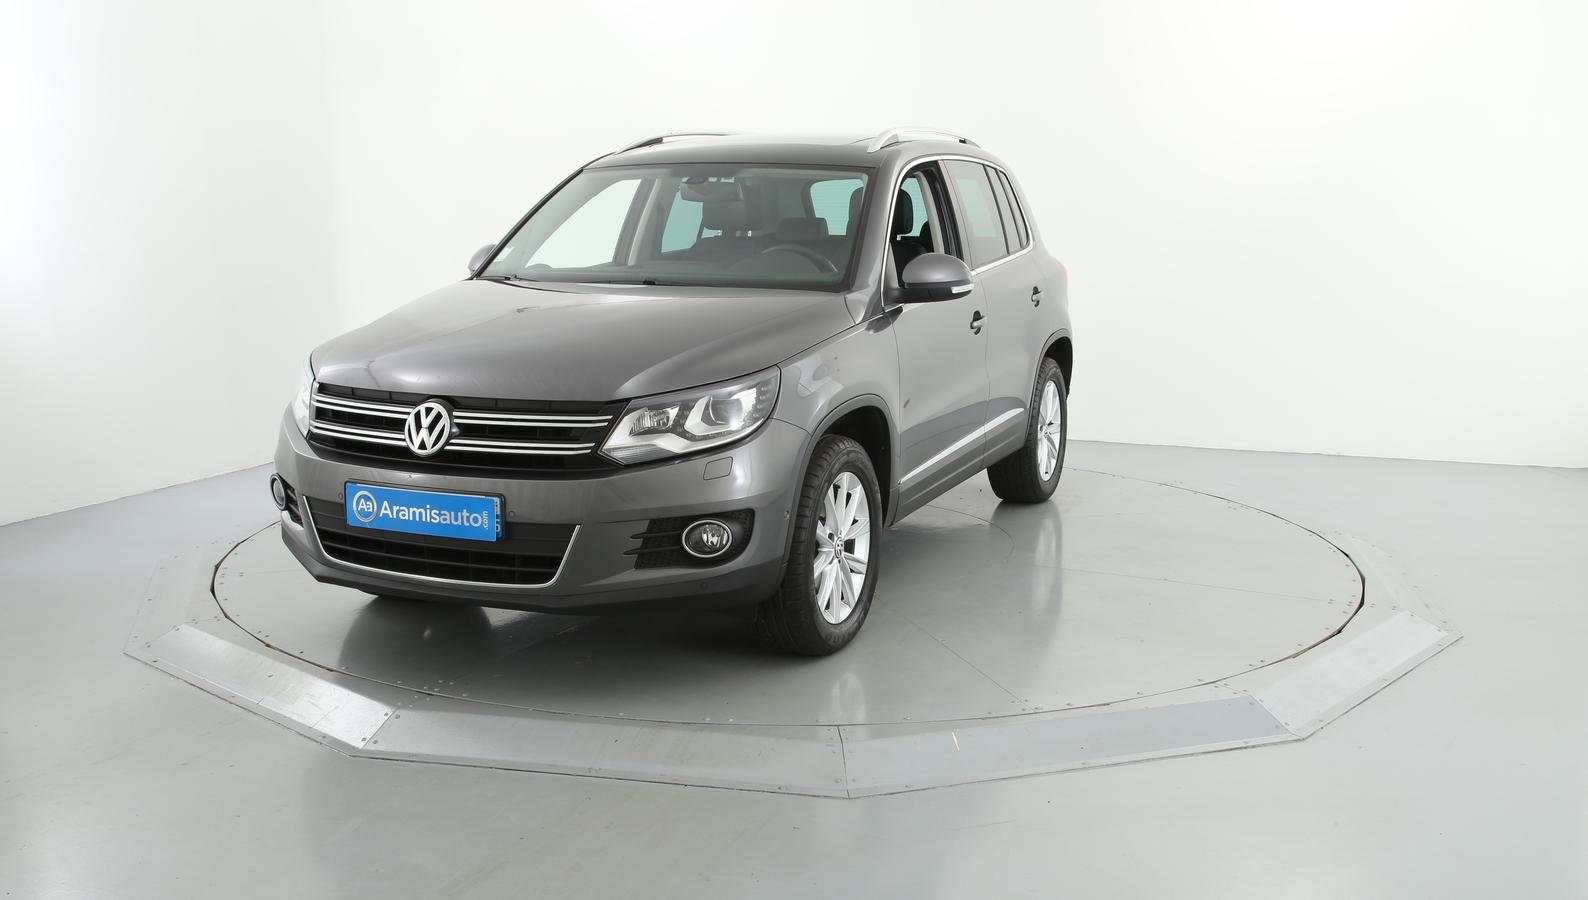 volkswagen tiguan 4x2 et suv 5 portes essence 1 4. Black Bedroom Furniture Sets. Home Design Ideas